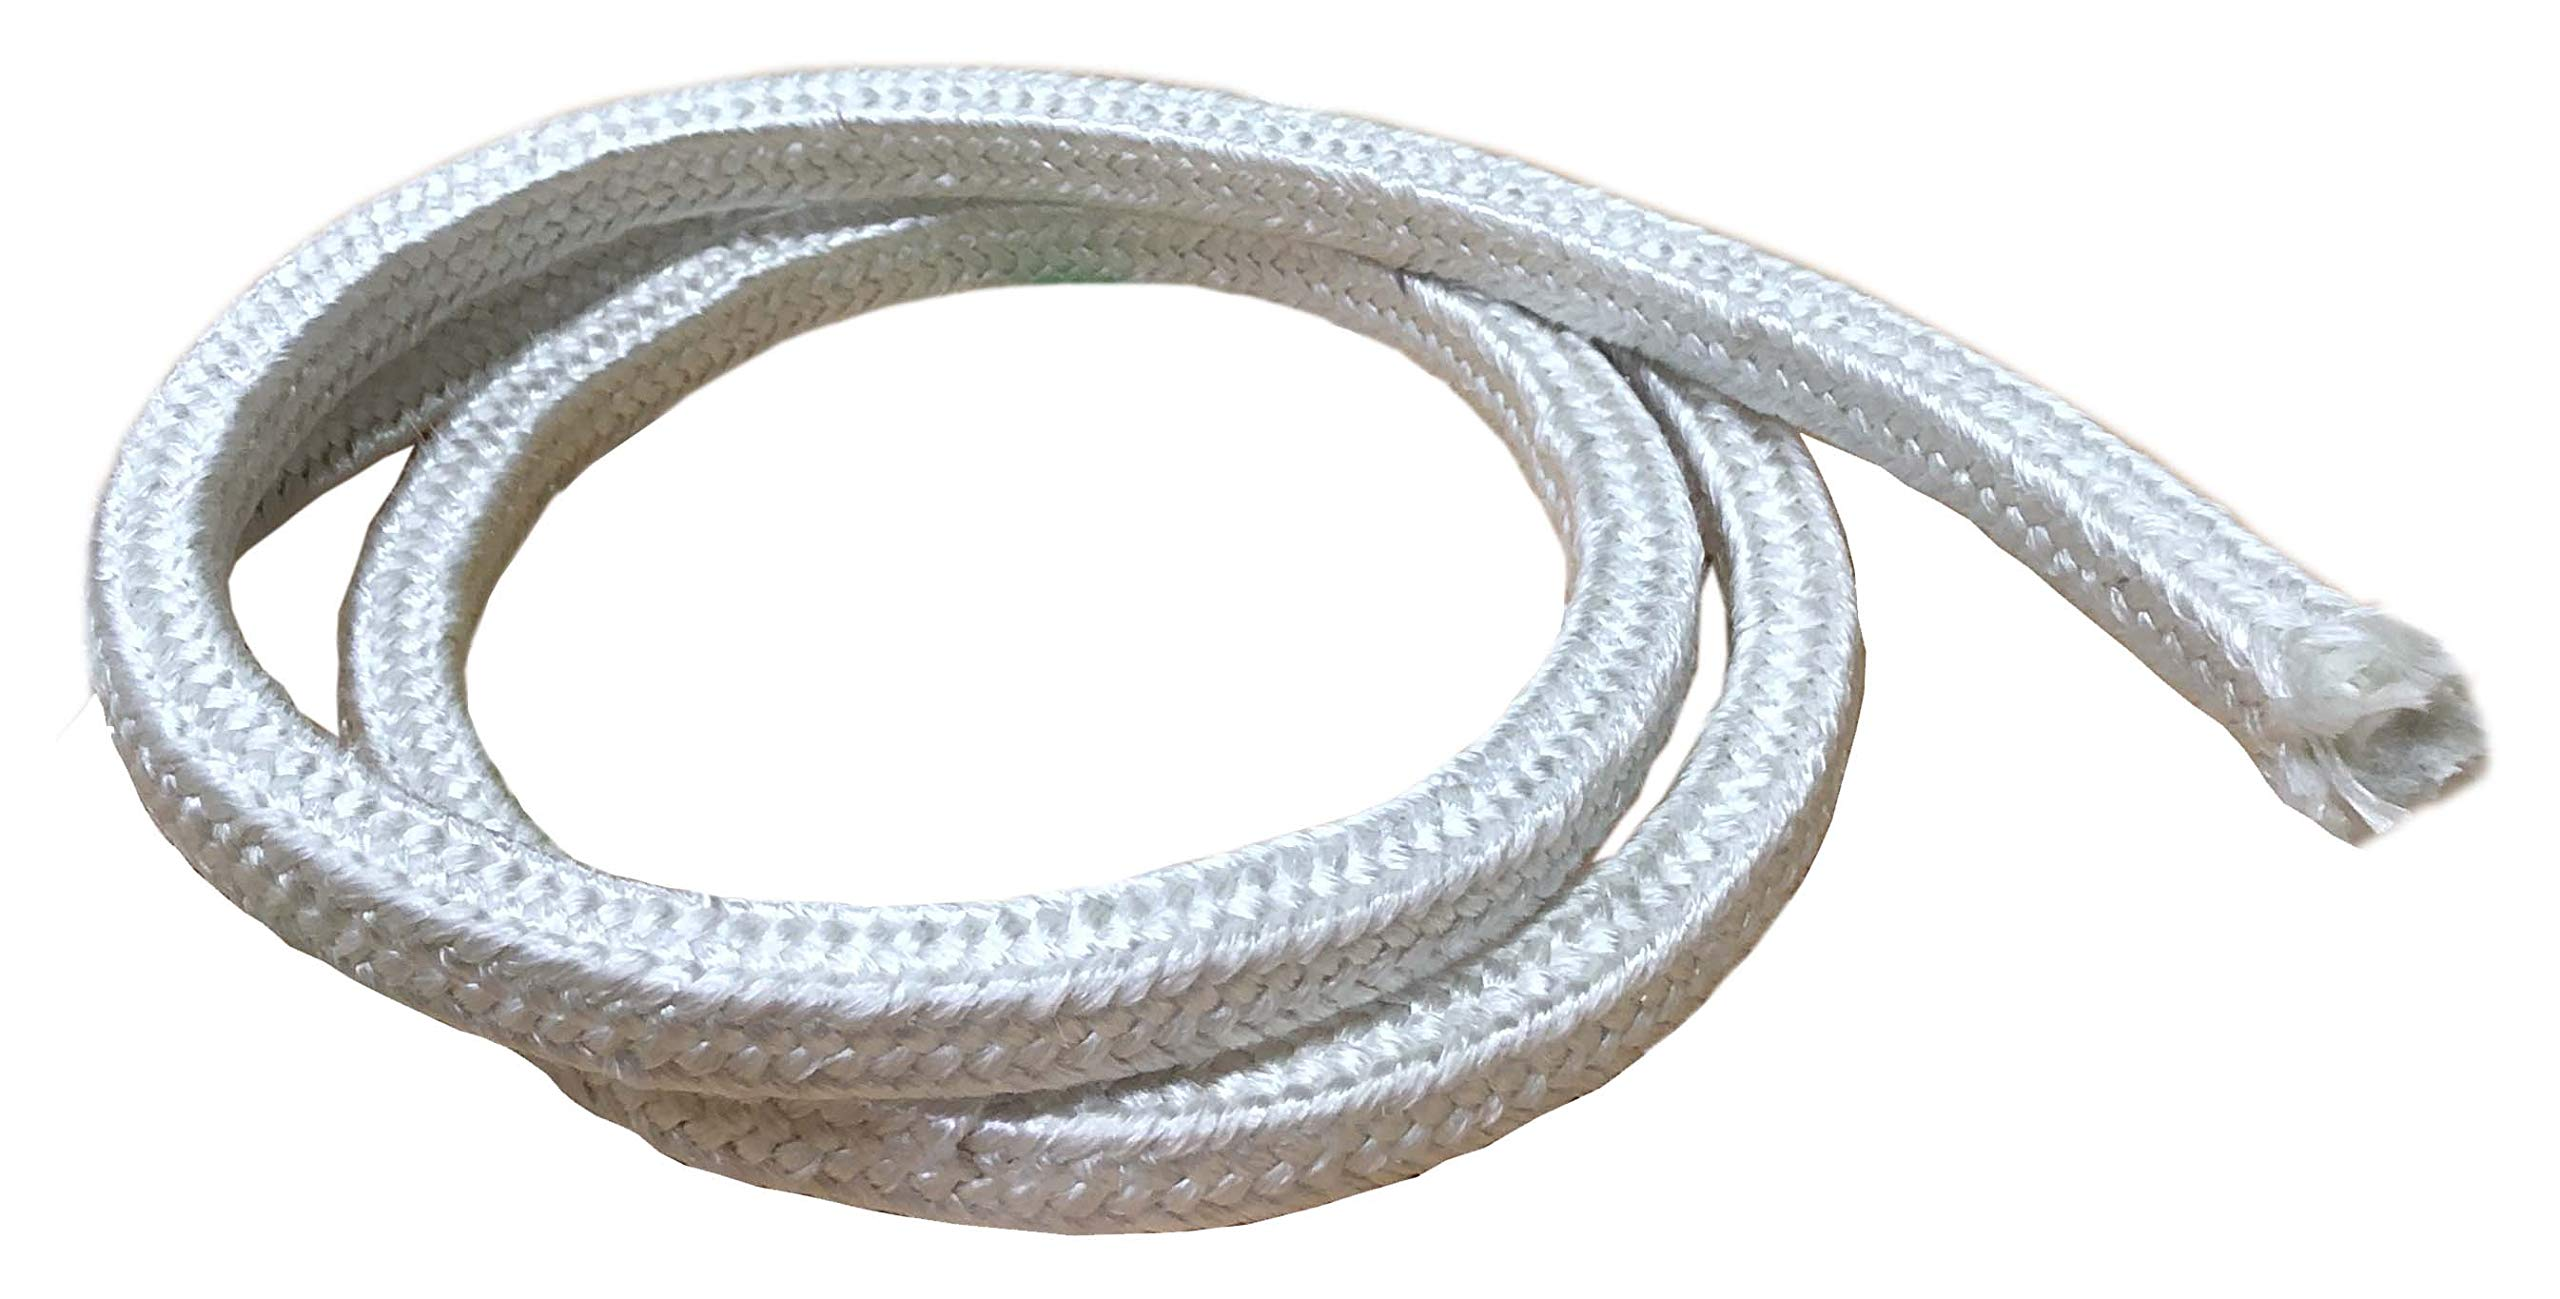 MinGlas Rope Seal - Fiberglass Square Braided Rope Gasket 3/8'' x 8 feet, Firm High-Density, Stove Boiler Furnace Oven Kiln Door Seal Gasket by MinGlas